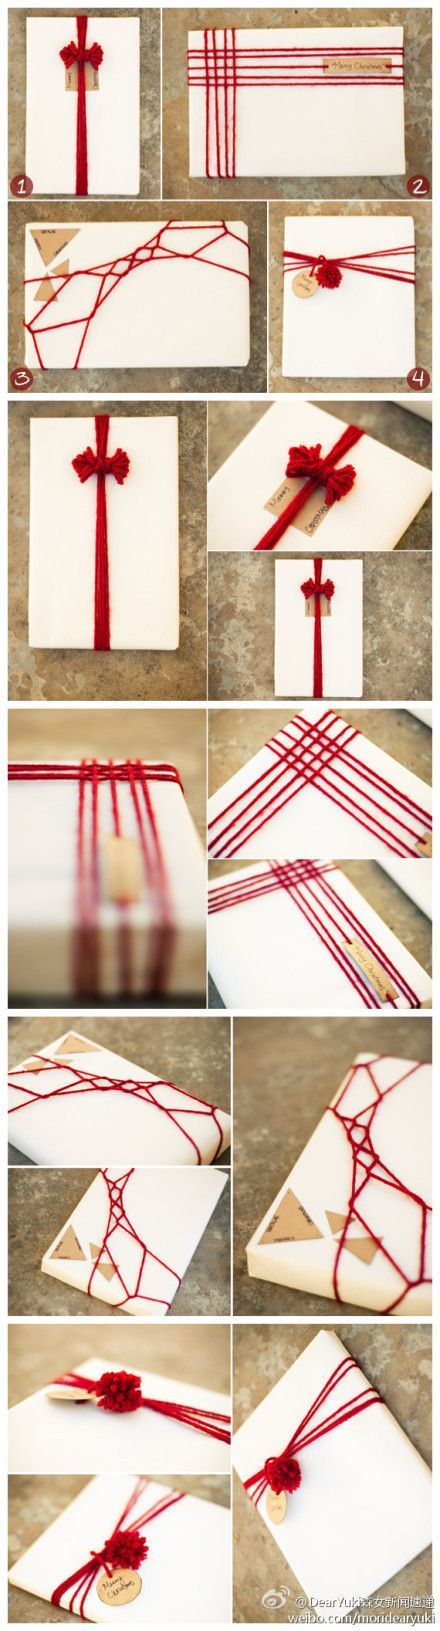 Gift wrapping #handmade gifts #do it yourself gifts #hand made gifts| http://diy-gifts.kira.lemoncoin.org